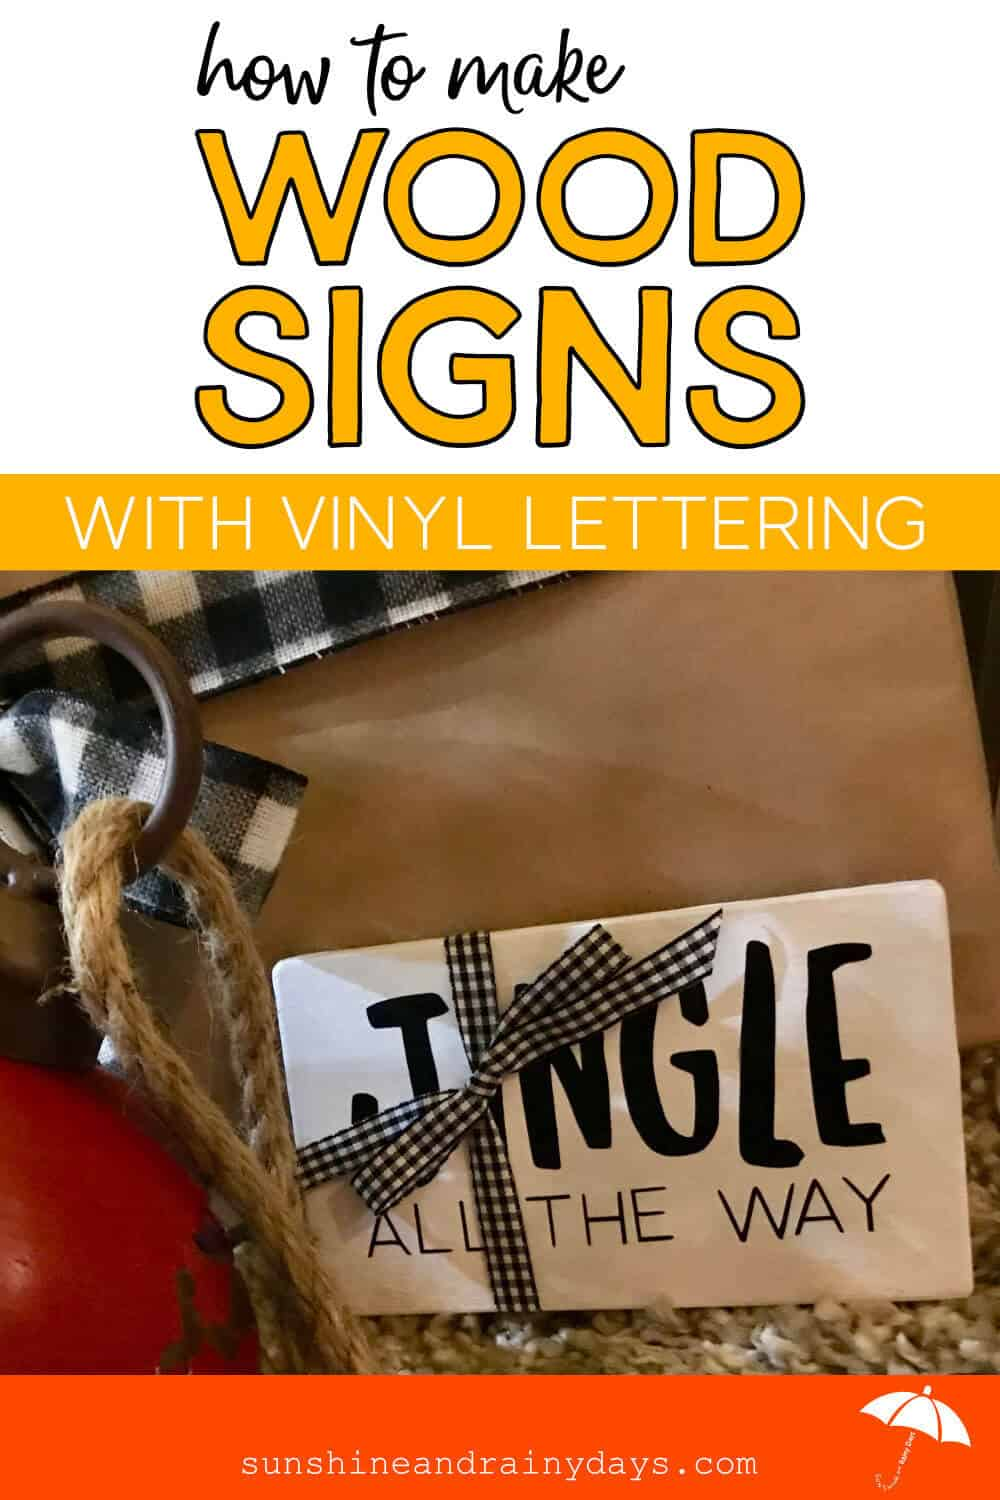 How To Make Wood Signs With Vinyl Lettering